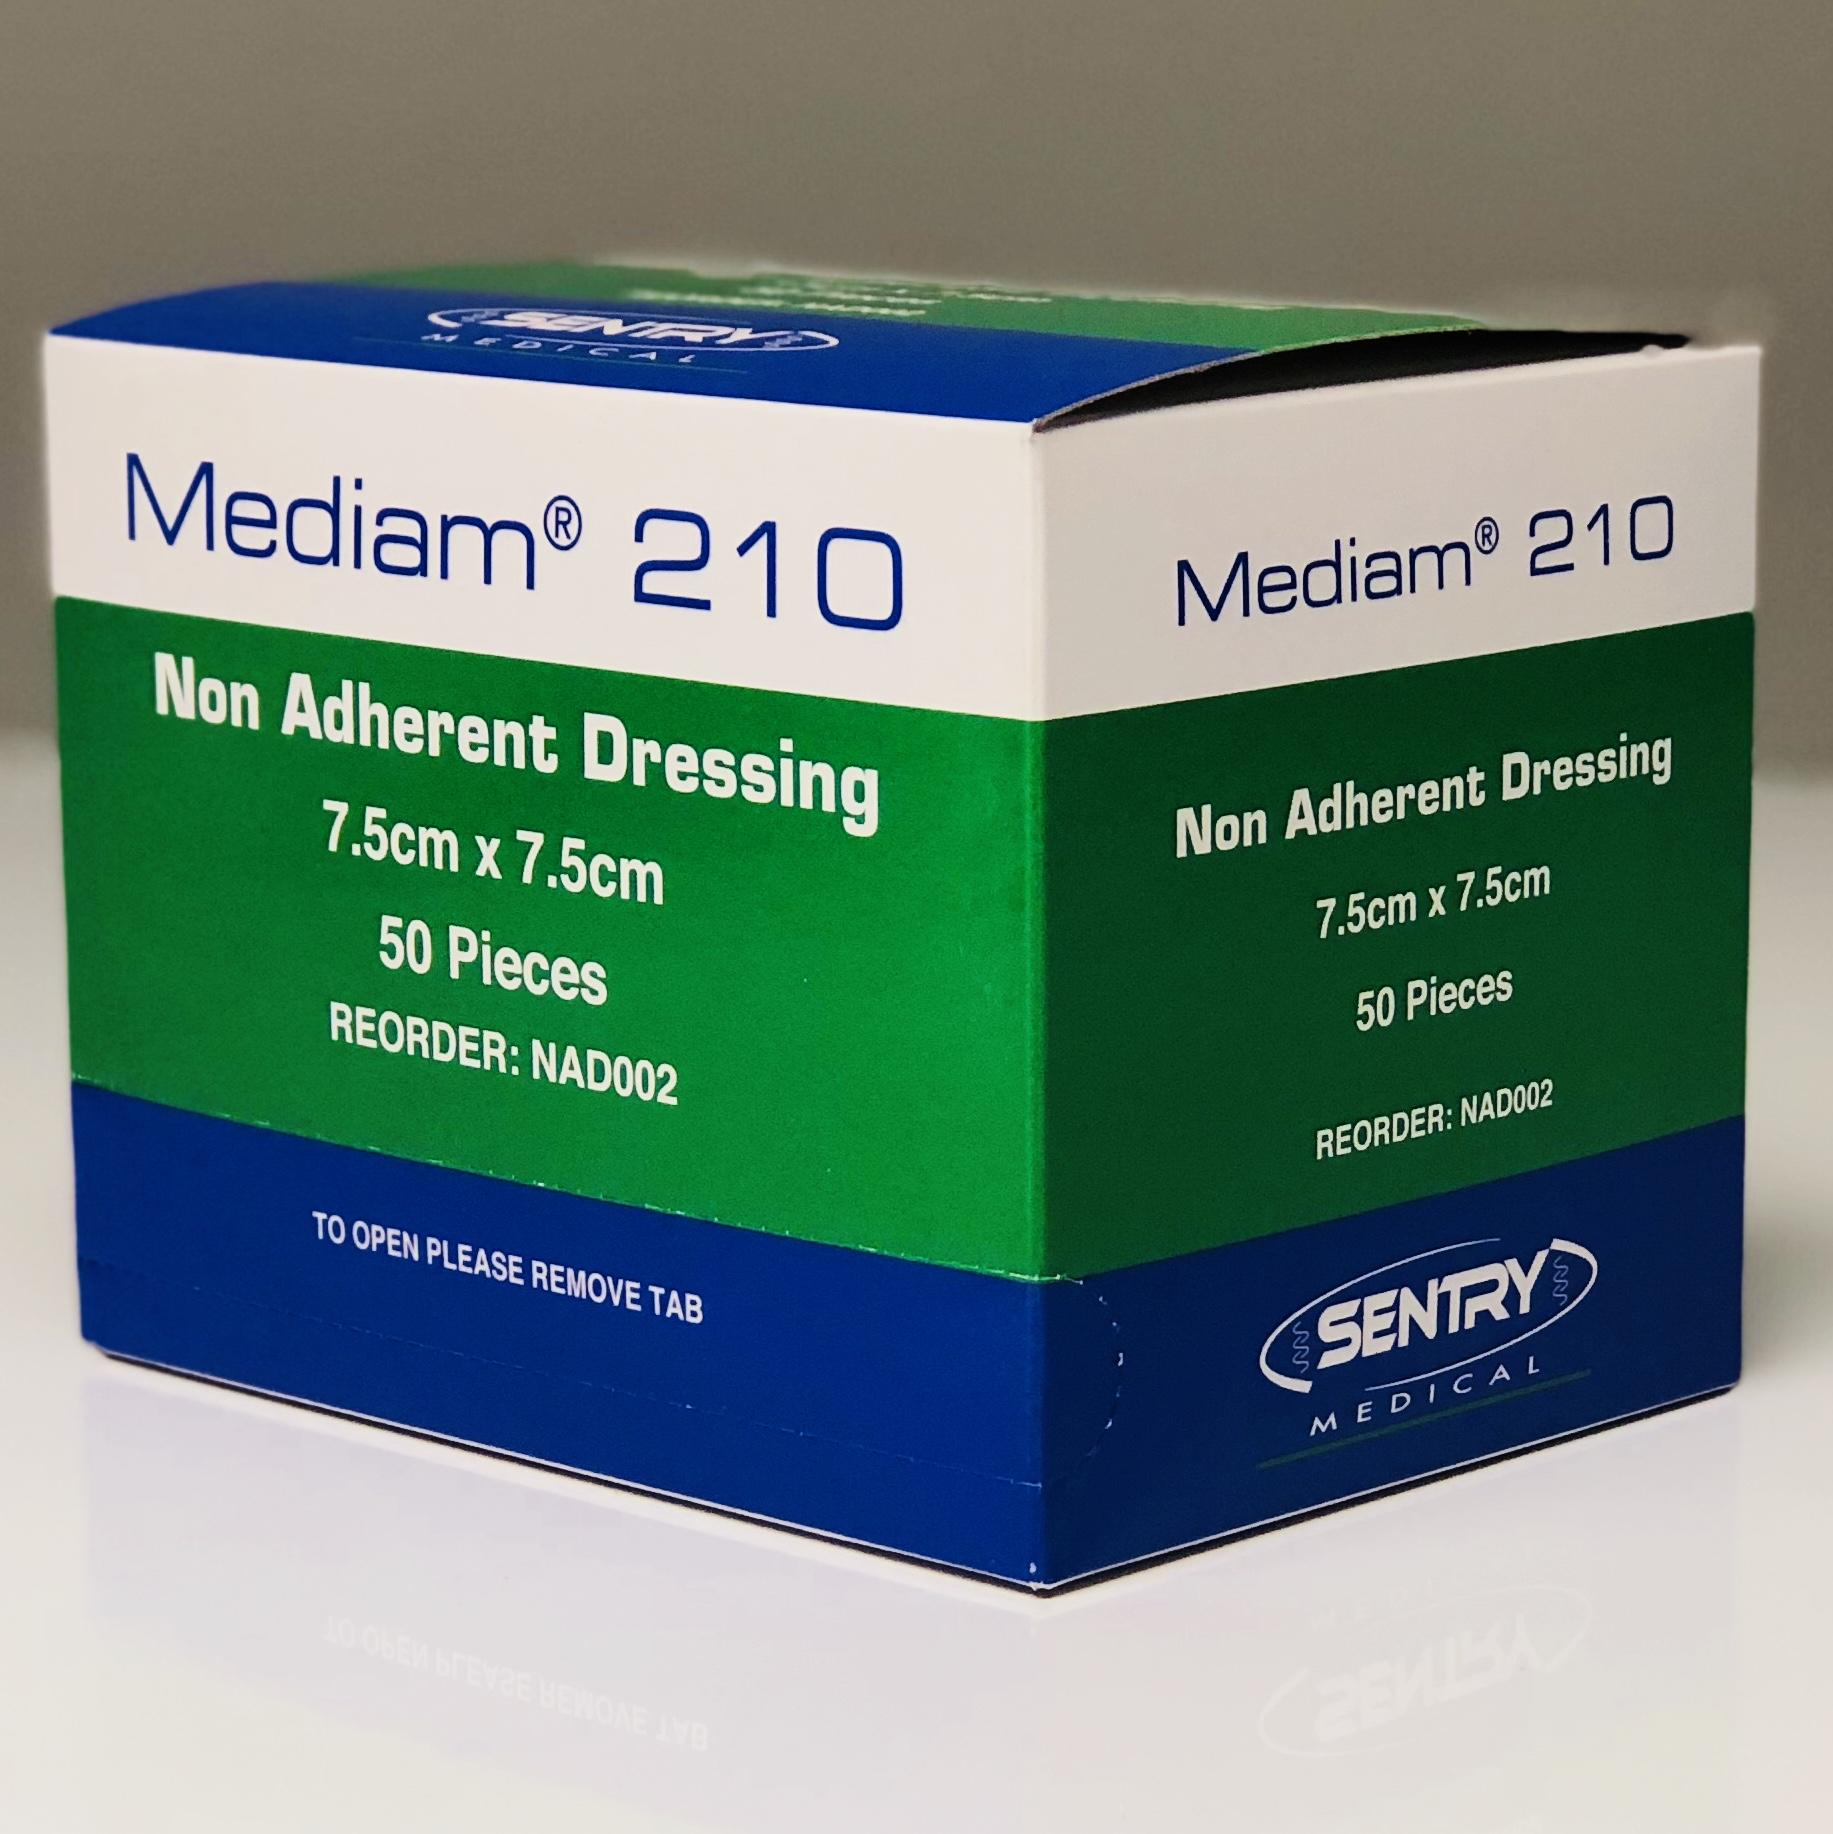 MEDIAM 210 LOW ADHERENT DRESSING 7.5CMx7.5CM, BOX 50